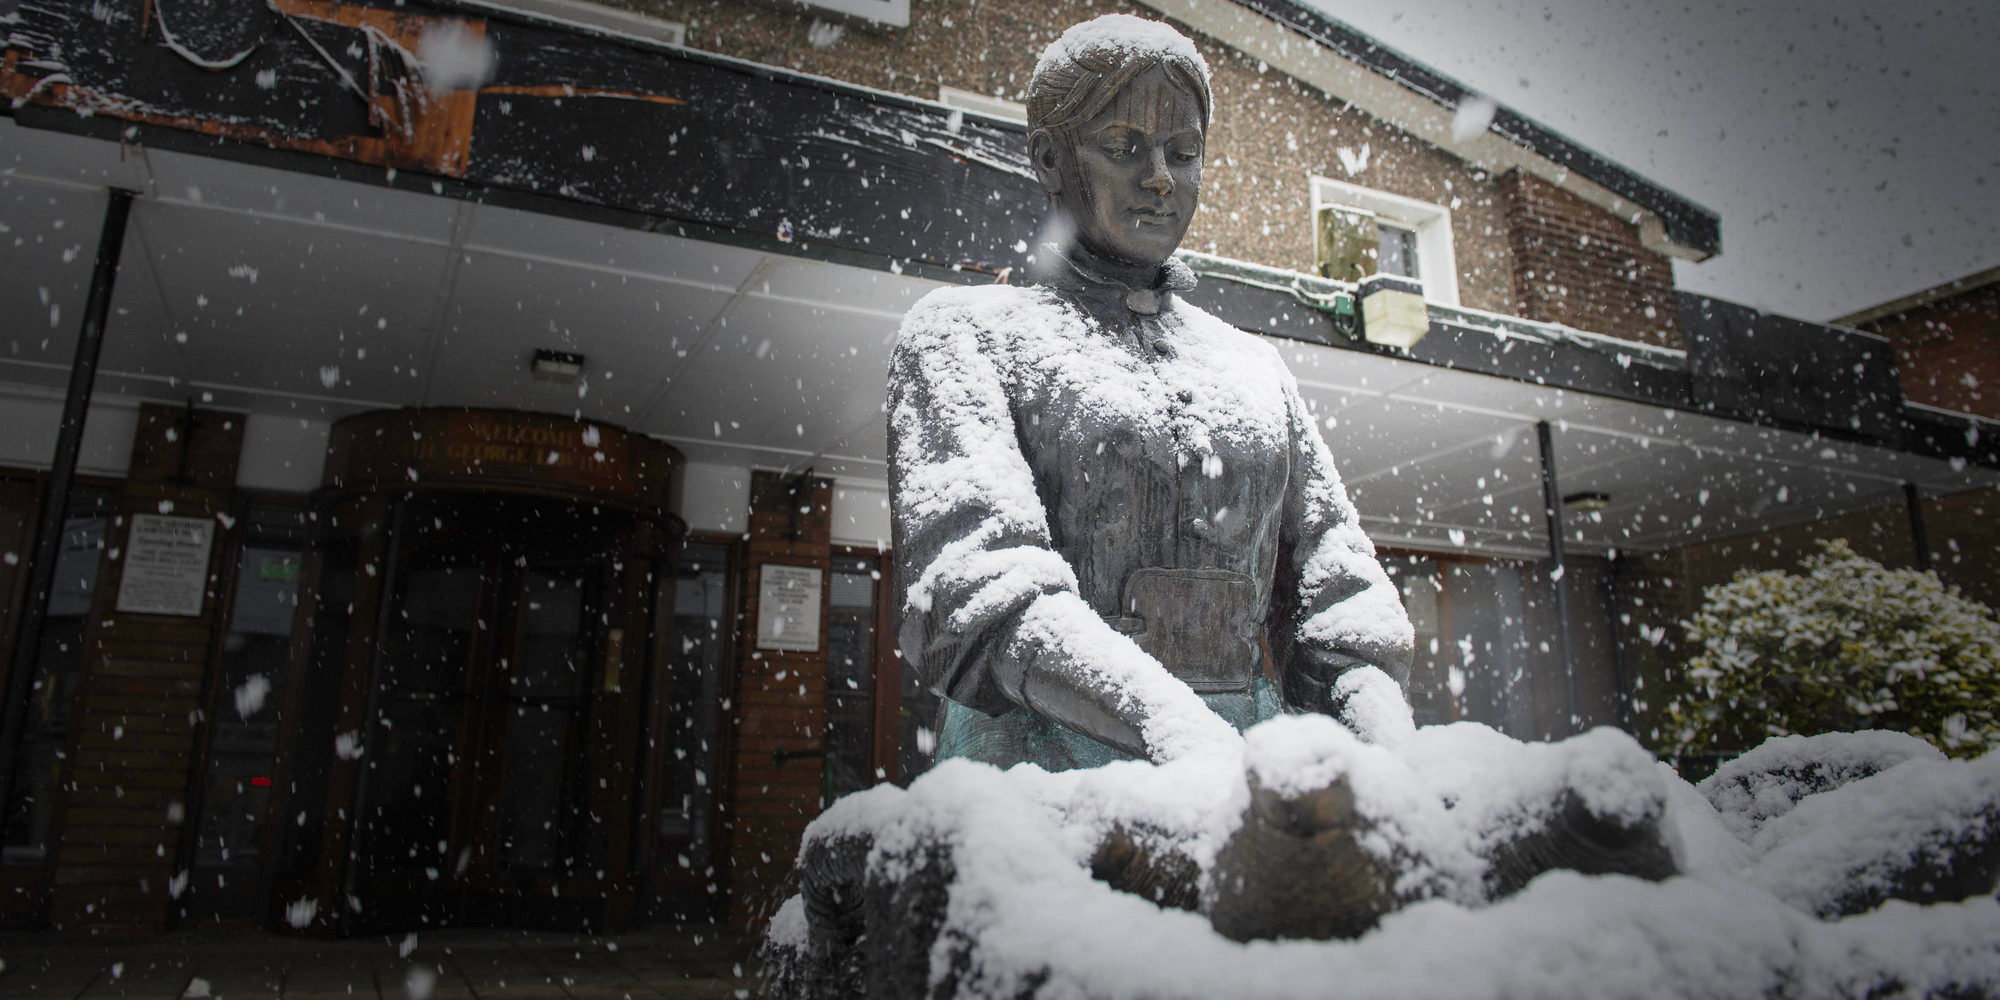 KW1TRT Manchester, UK. 29th Dec, 2017. Snowfall on a sculpture outside the George Lawton Hall in the Pennine village of Mossley, Greater Manchester on Friday 29th December 2017. Credit: Matthew Wilkinson/Alamy Live News